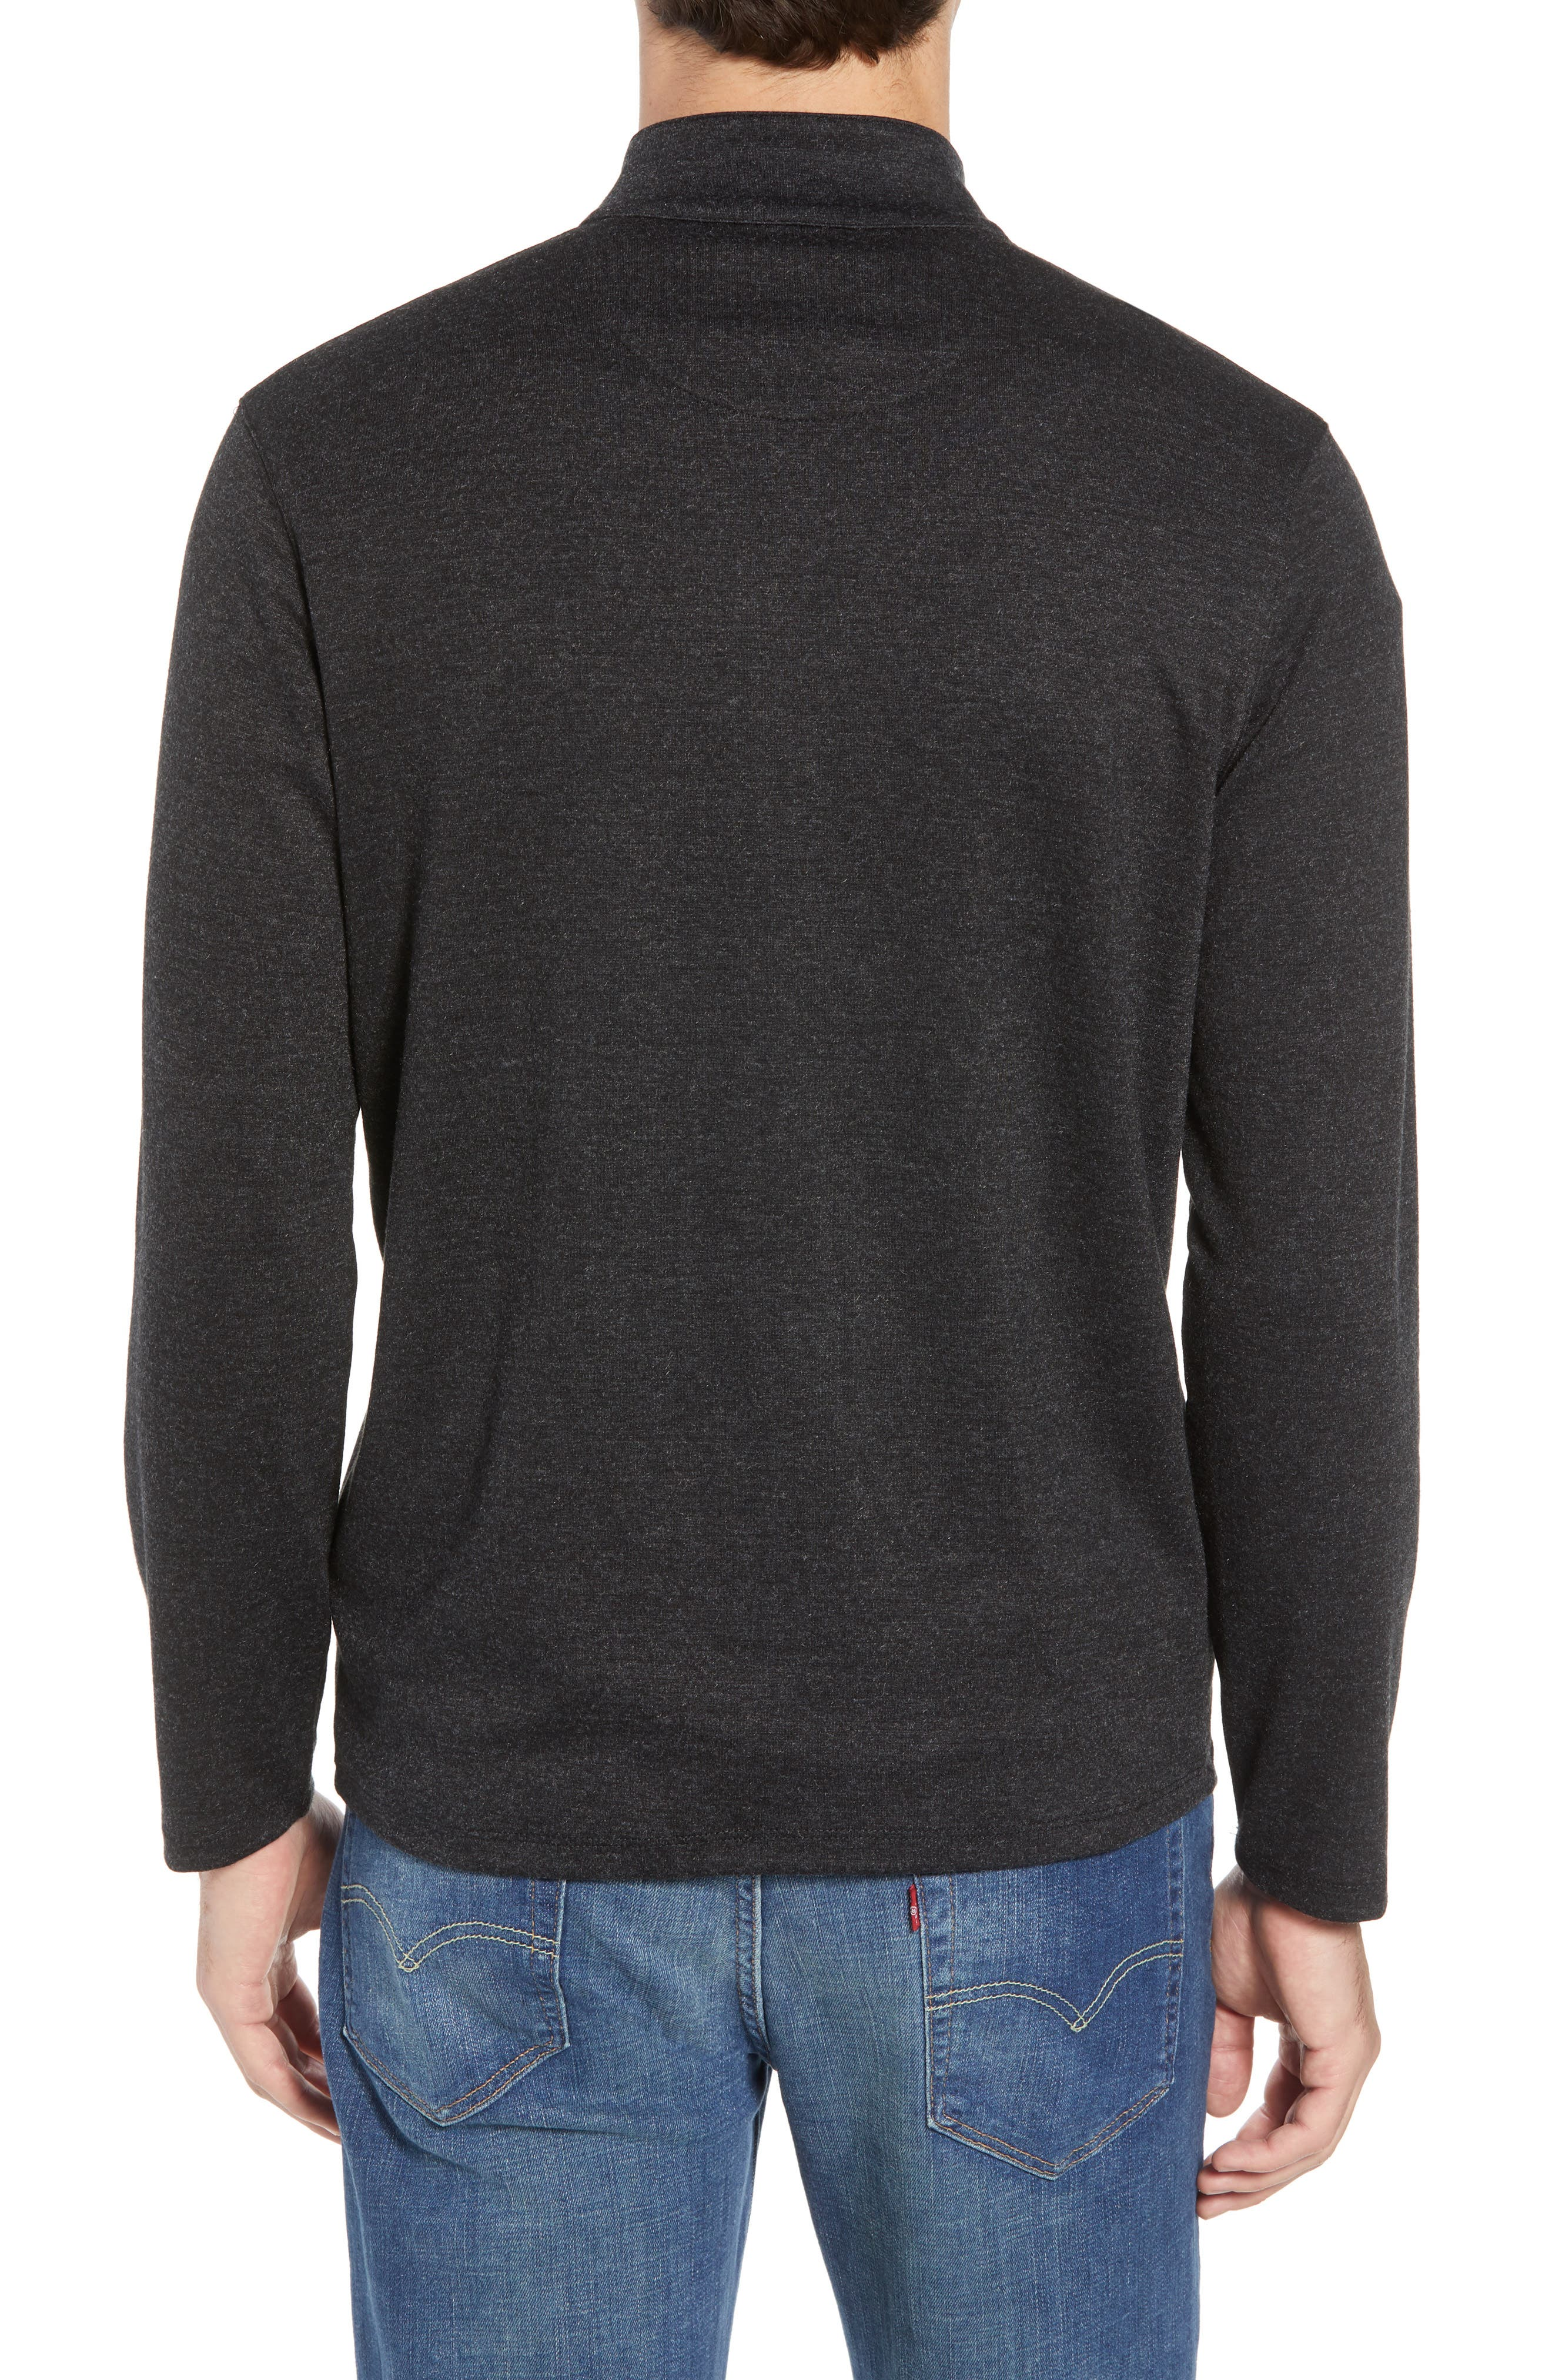 North Mock Neck Pullover,                             Alternate thumbnail 2, color,                             NORTH GREY